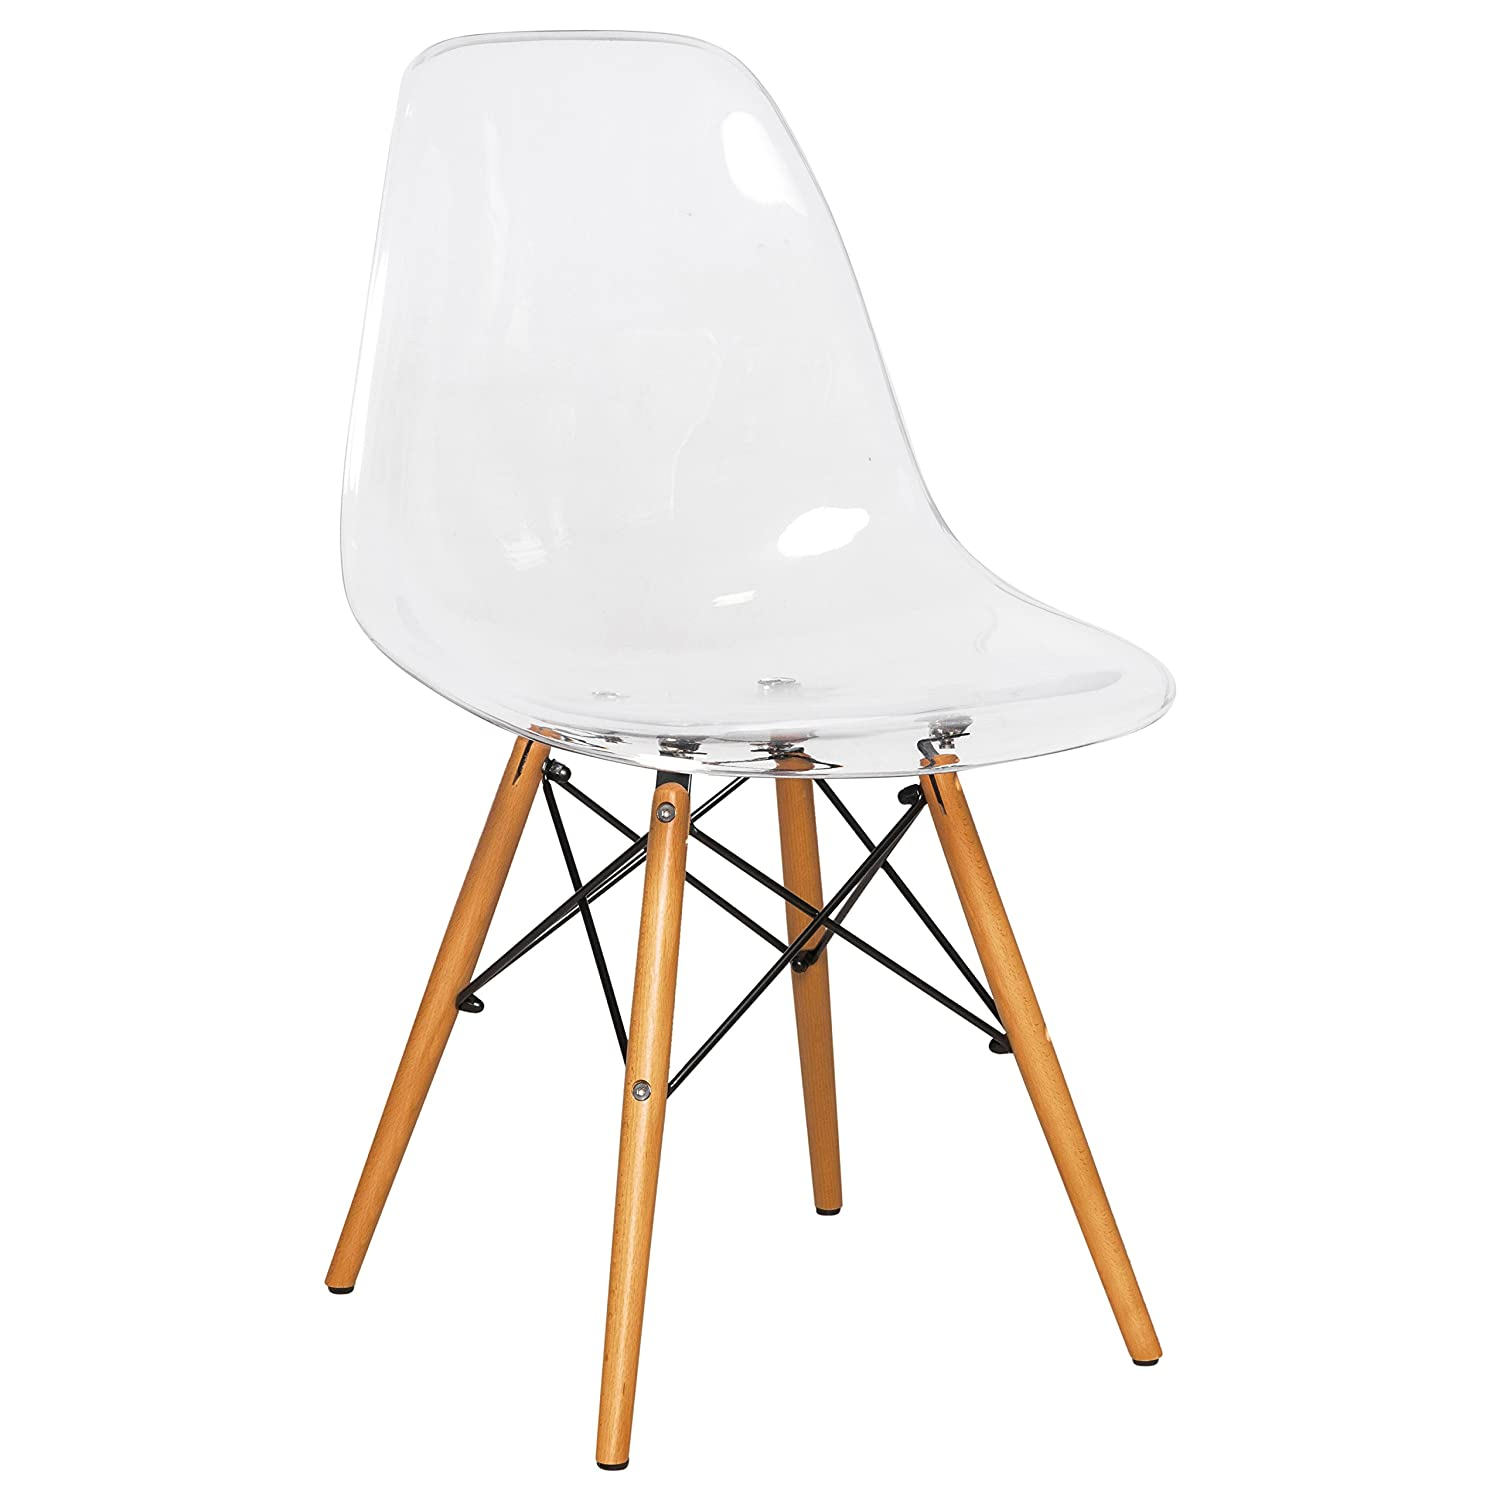 LeisureMod Calbert Plastic Molded Dining Side Chair with Wood Dowel Legs (Clear)